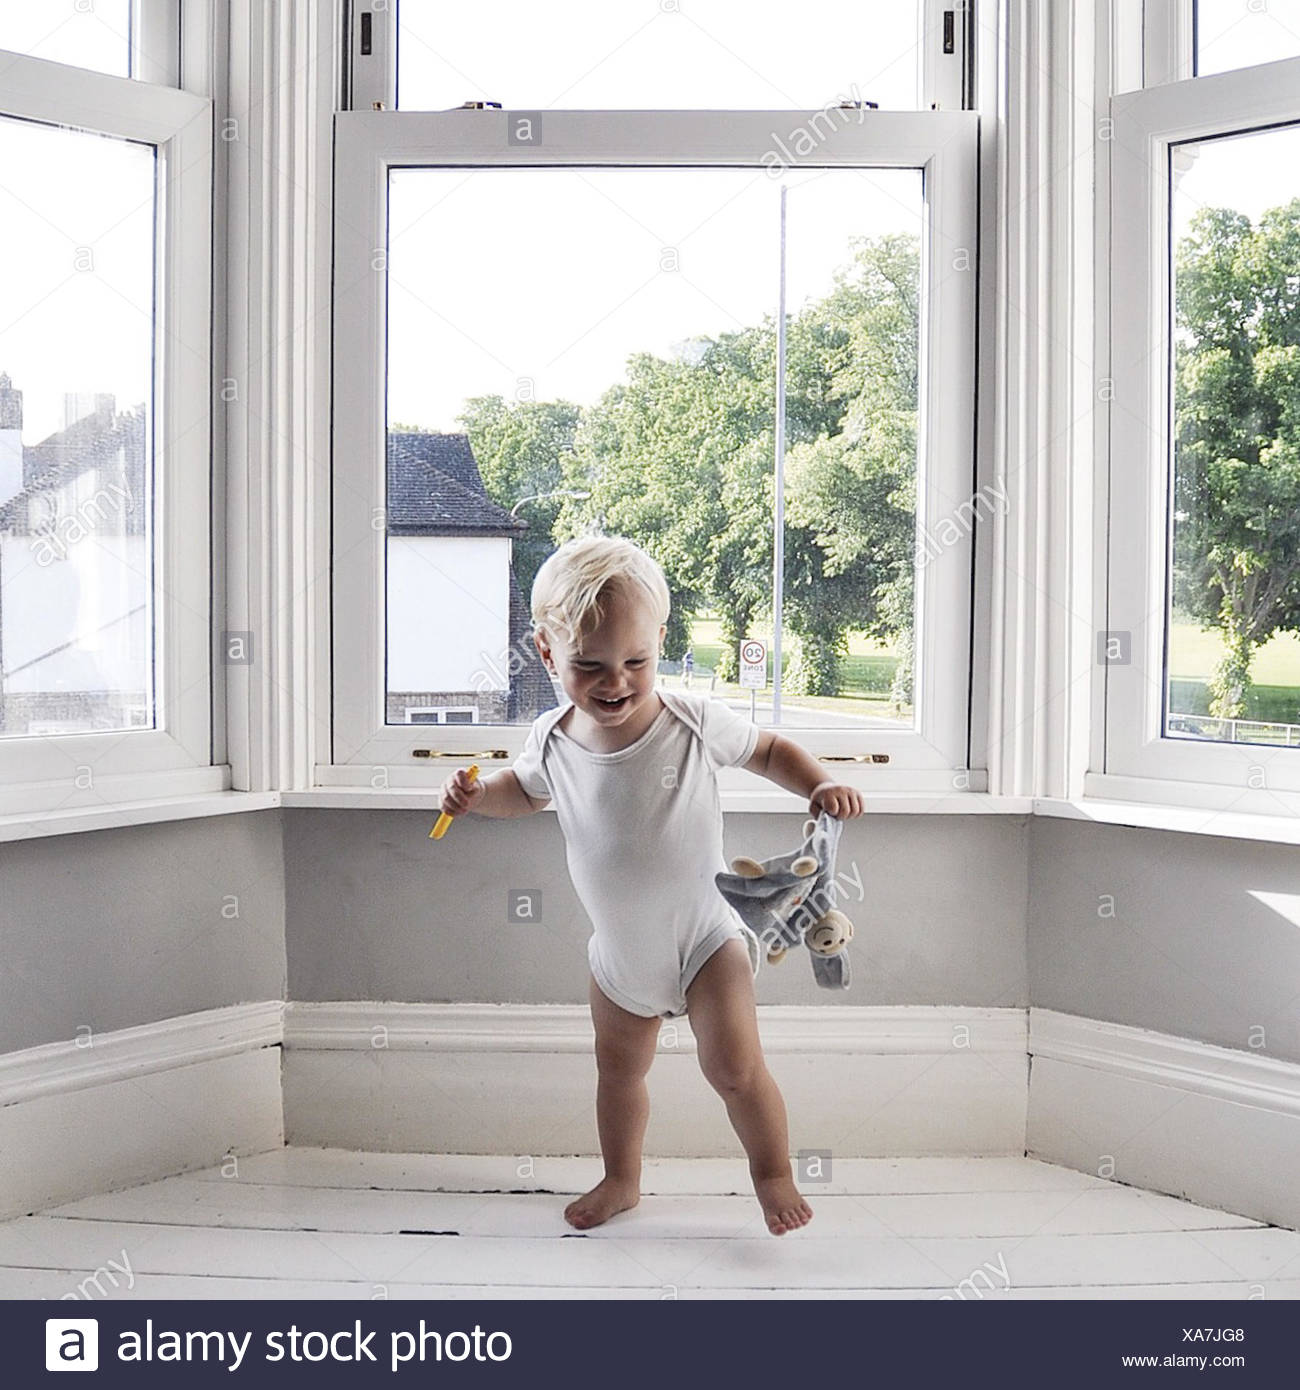 Boy dancing in living room holding toy - Stock Image